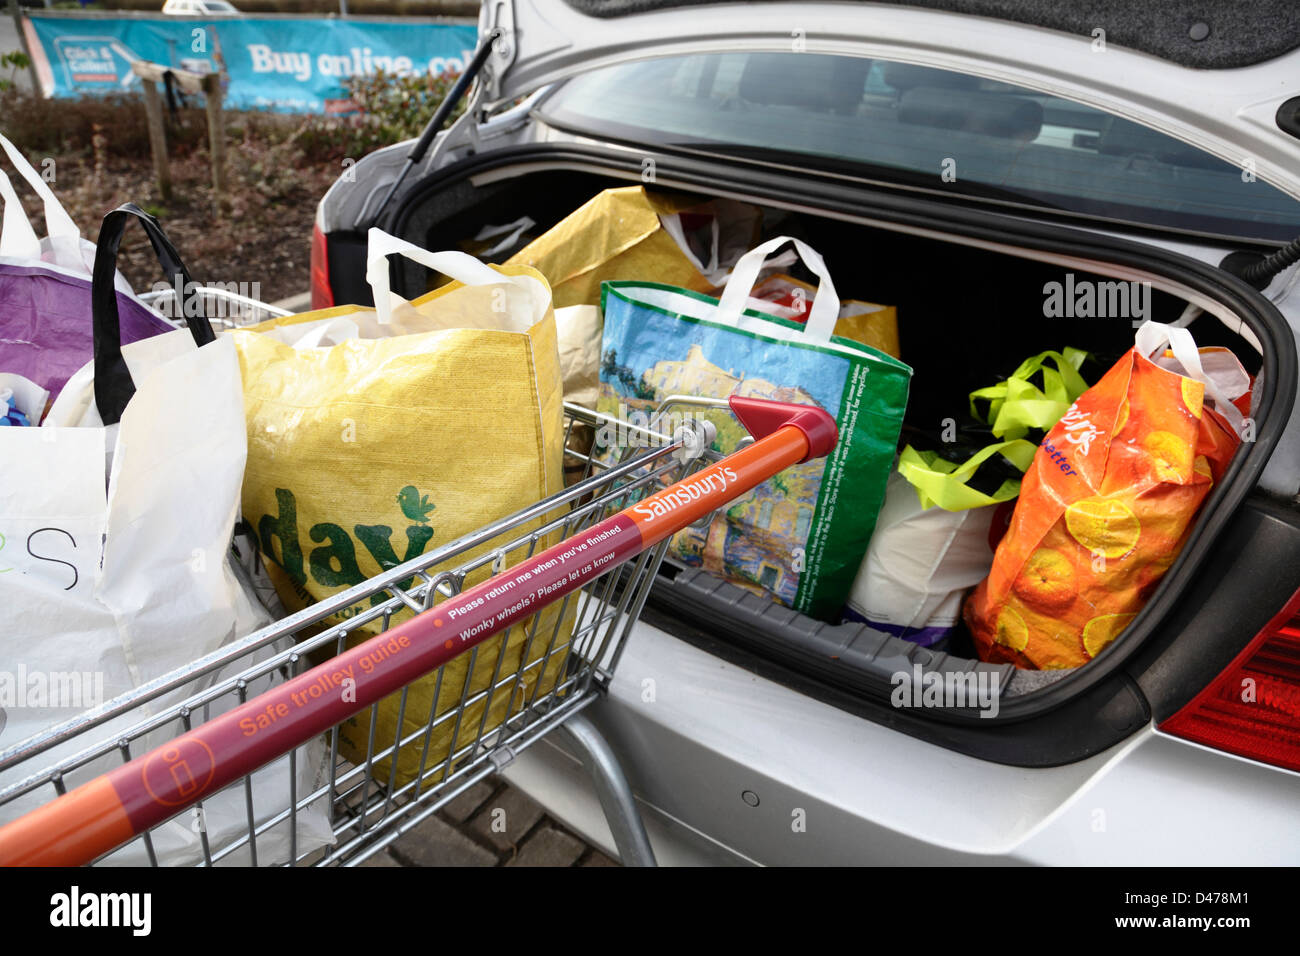 Shopping bags in a Sainsbury's shopping trolley and car boot, Scotland, UK - Stock Image